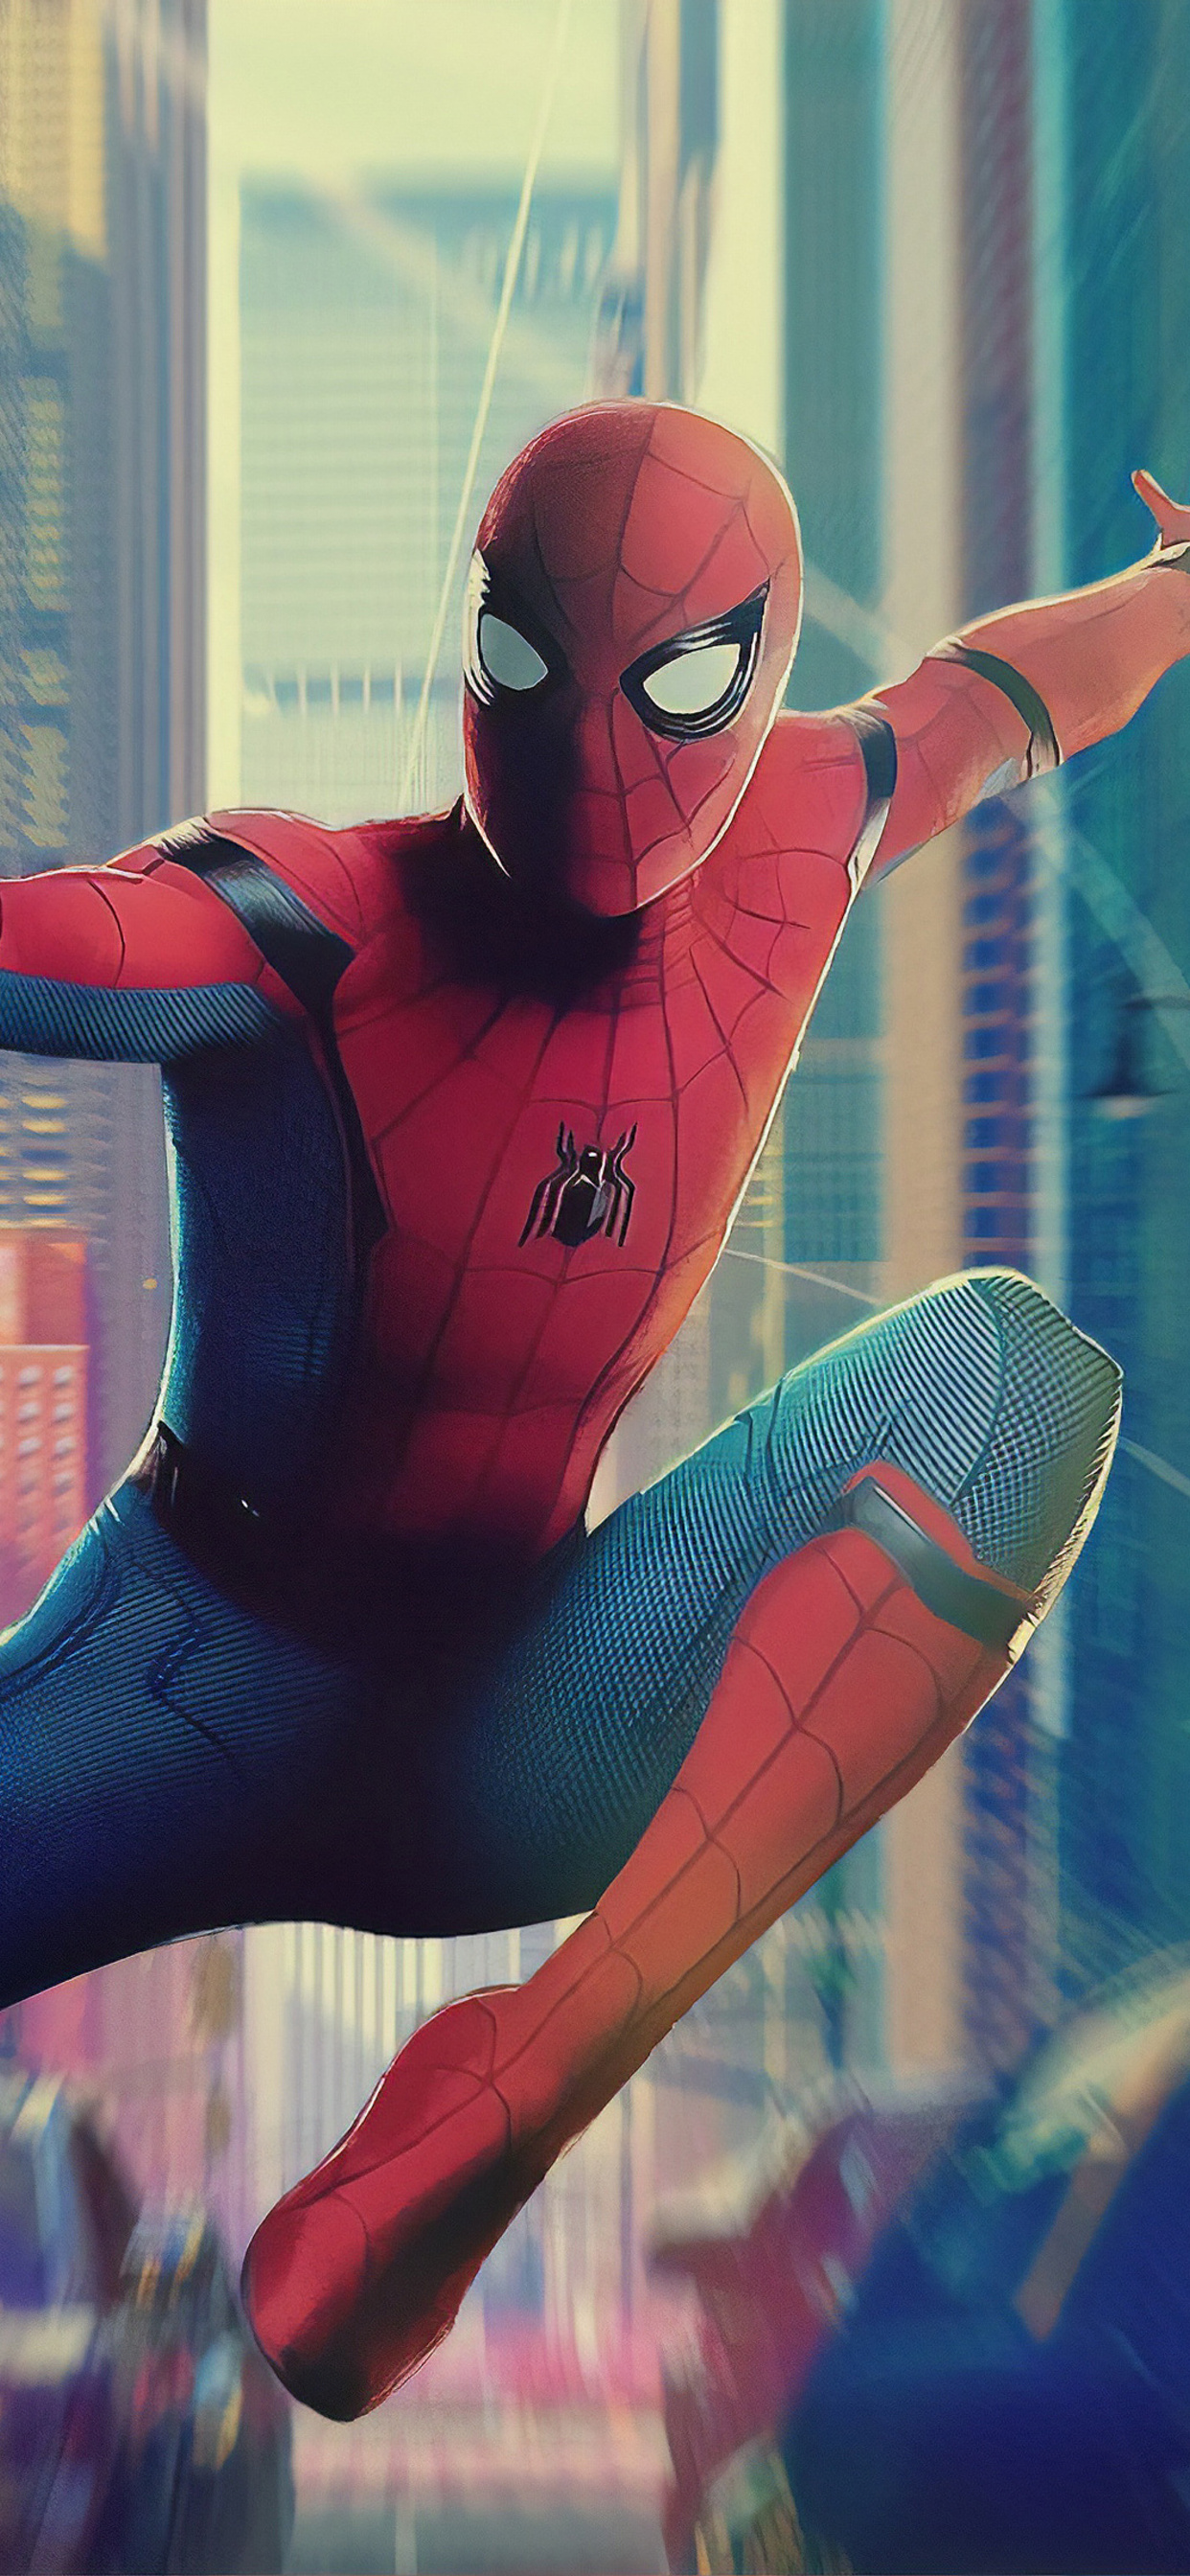 2019-spiderman-4k-art-md.jpg